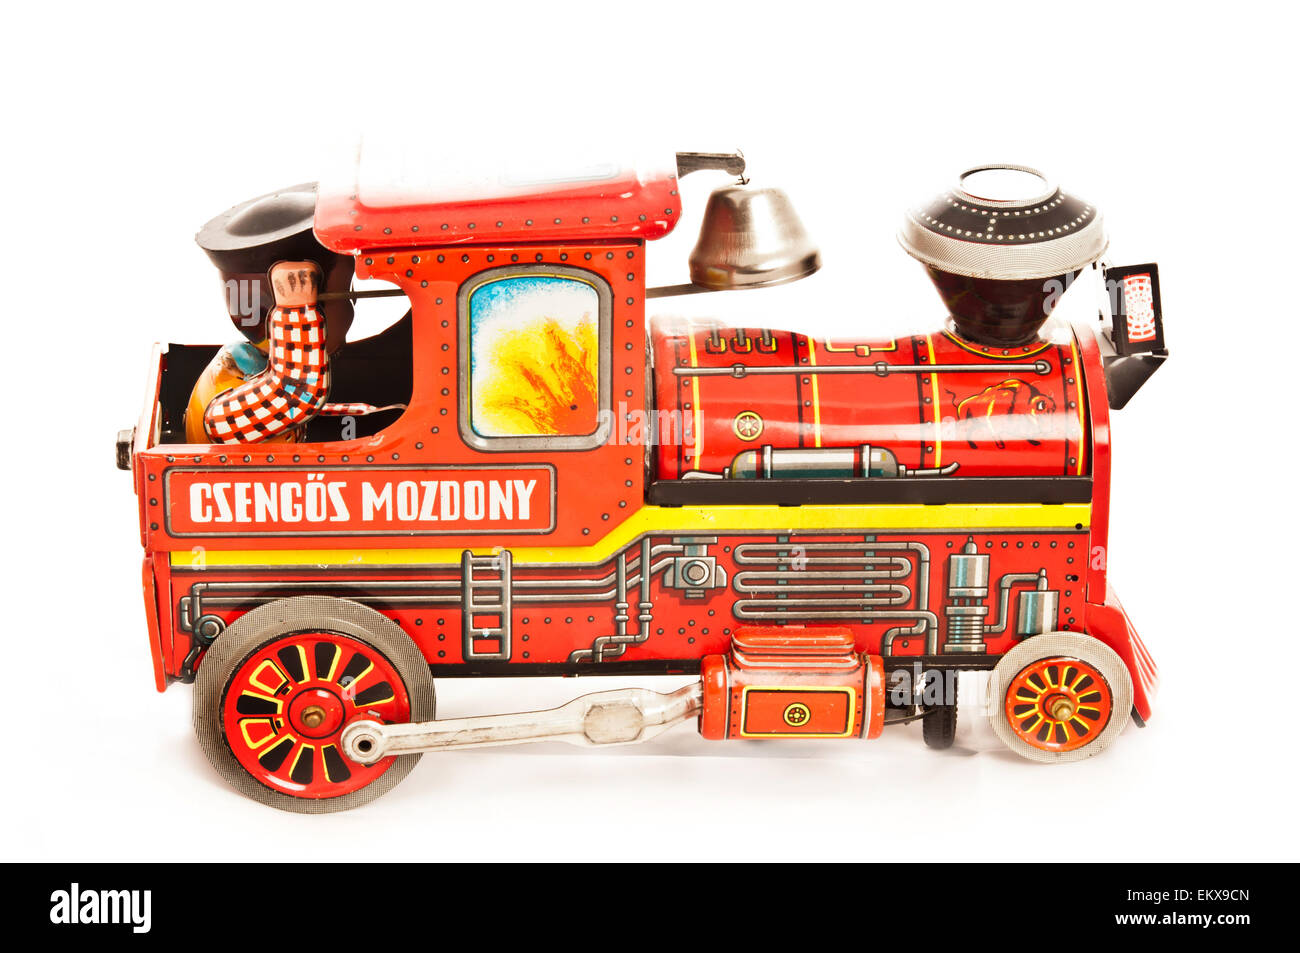 vintage steam locomotive tin toy - Stock Image